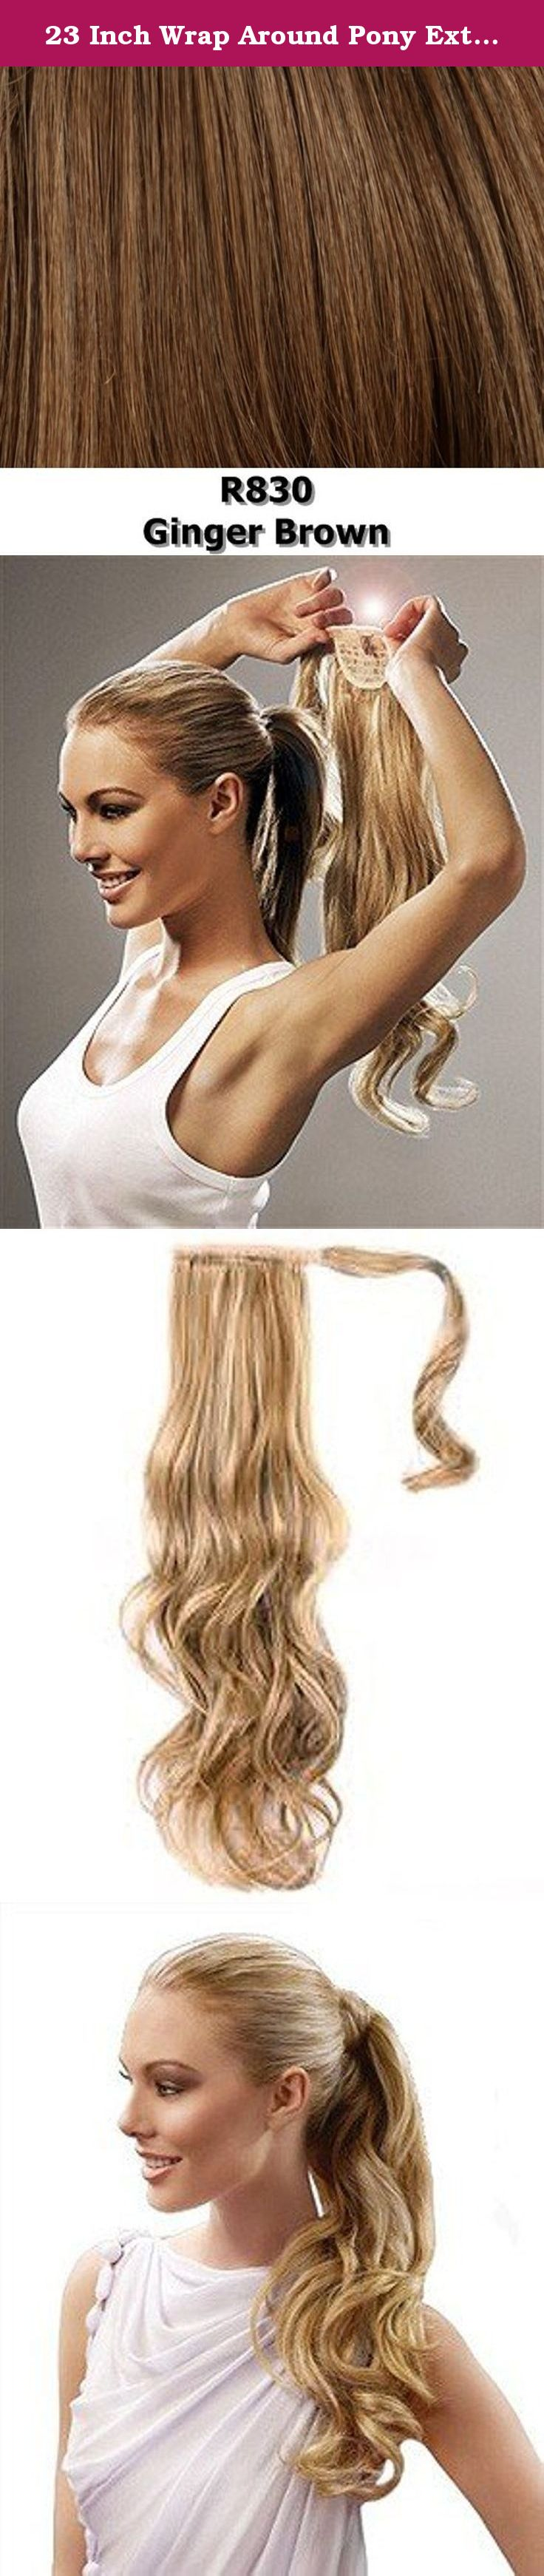 23 Inch Wrap Around Pony Extension By Jessica Simpson R830 Ging